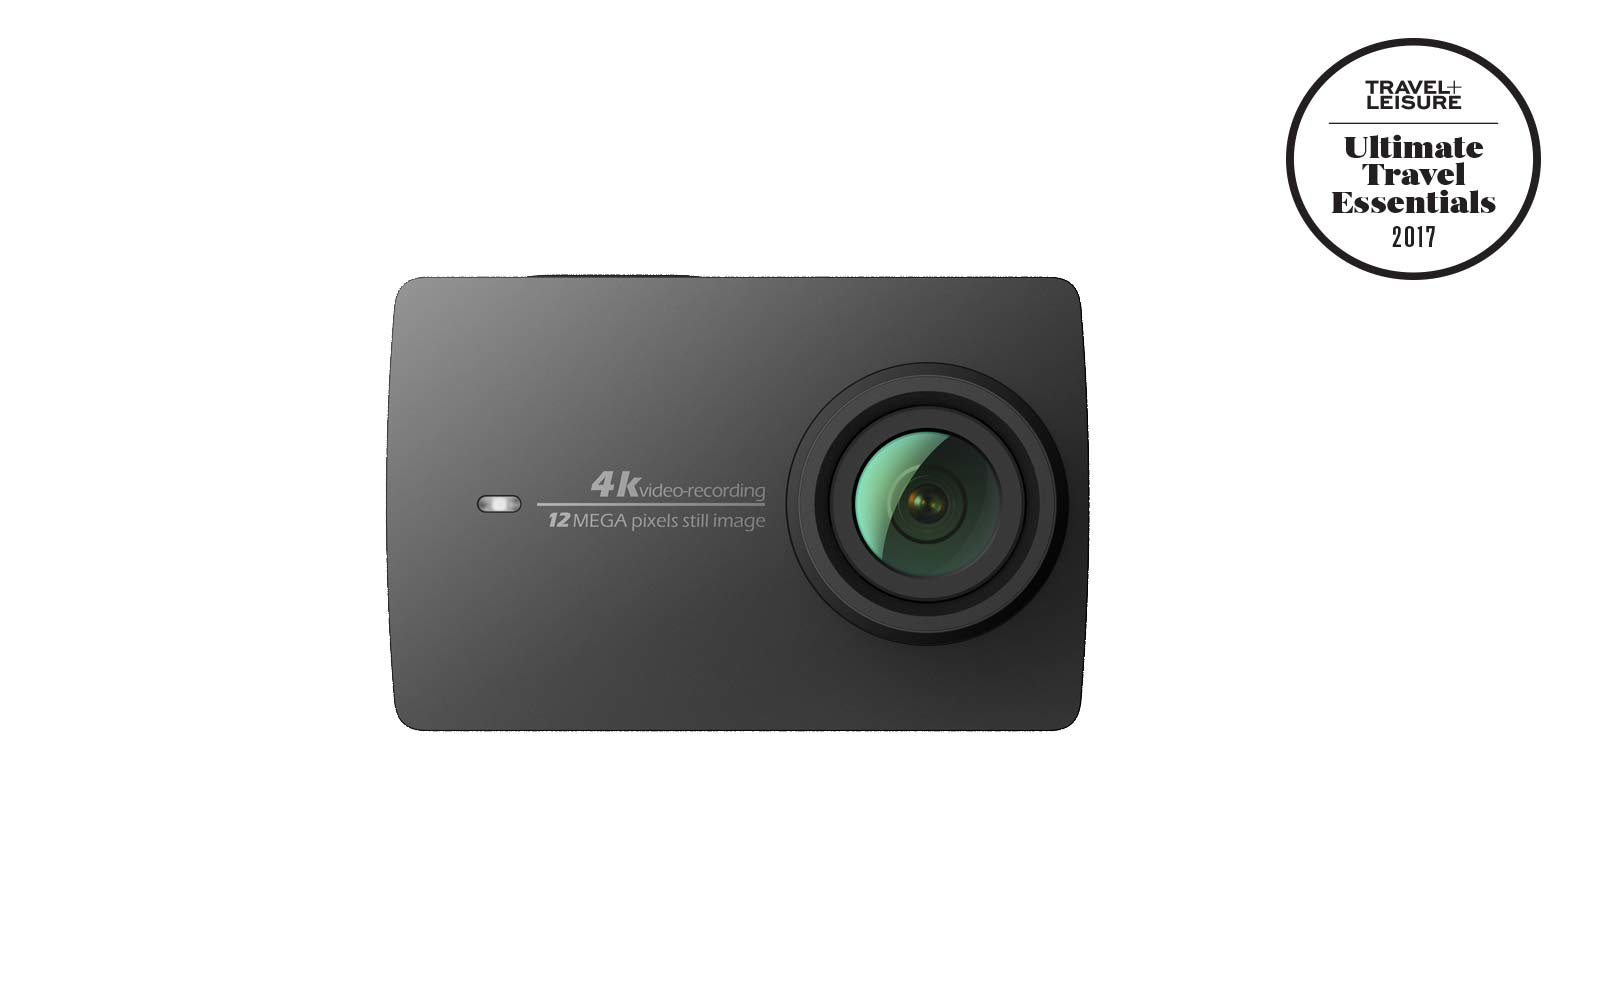 Travel Tech Gadgets Technology Yi 4K Action Camera